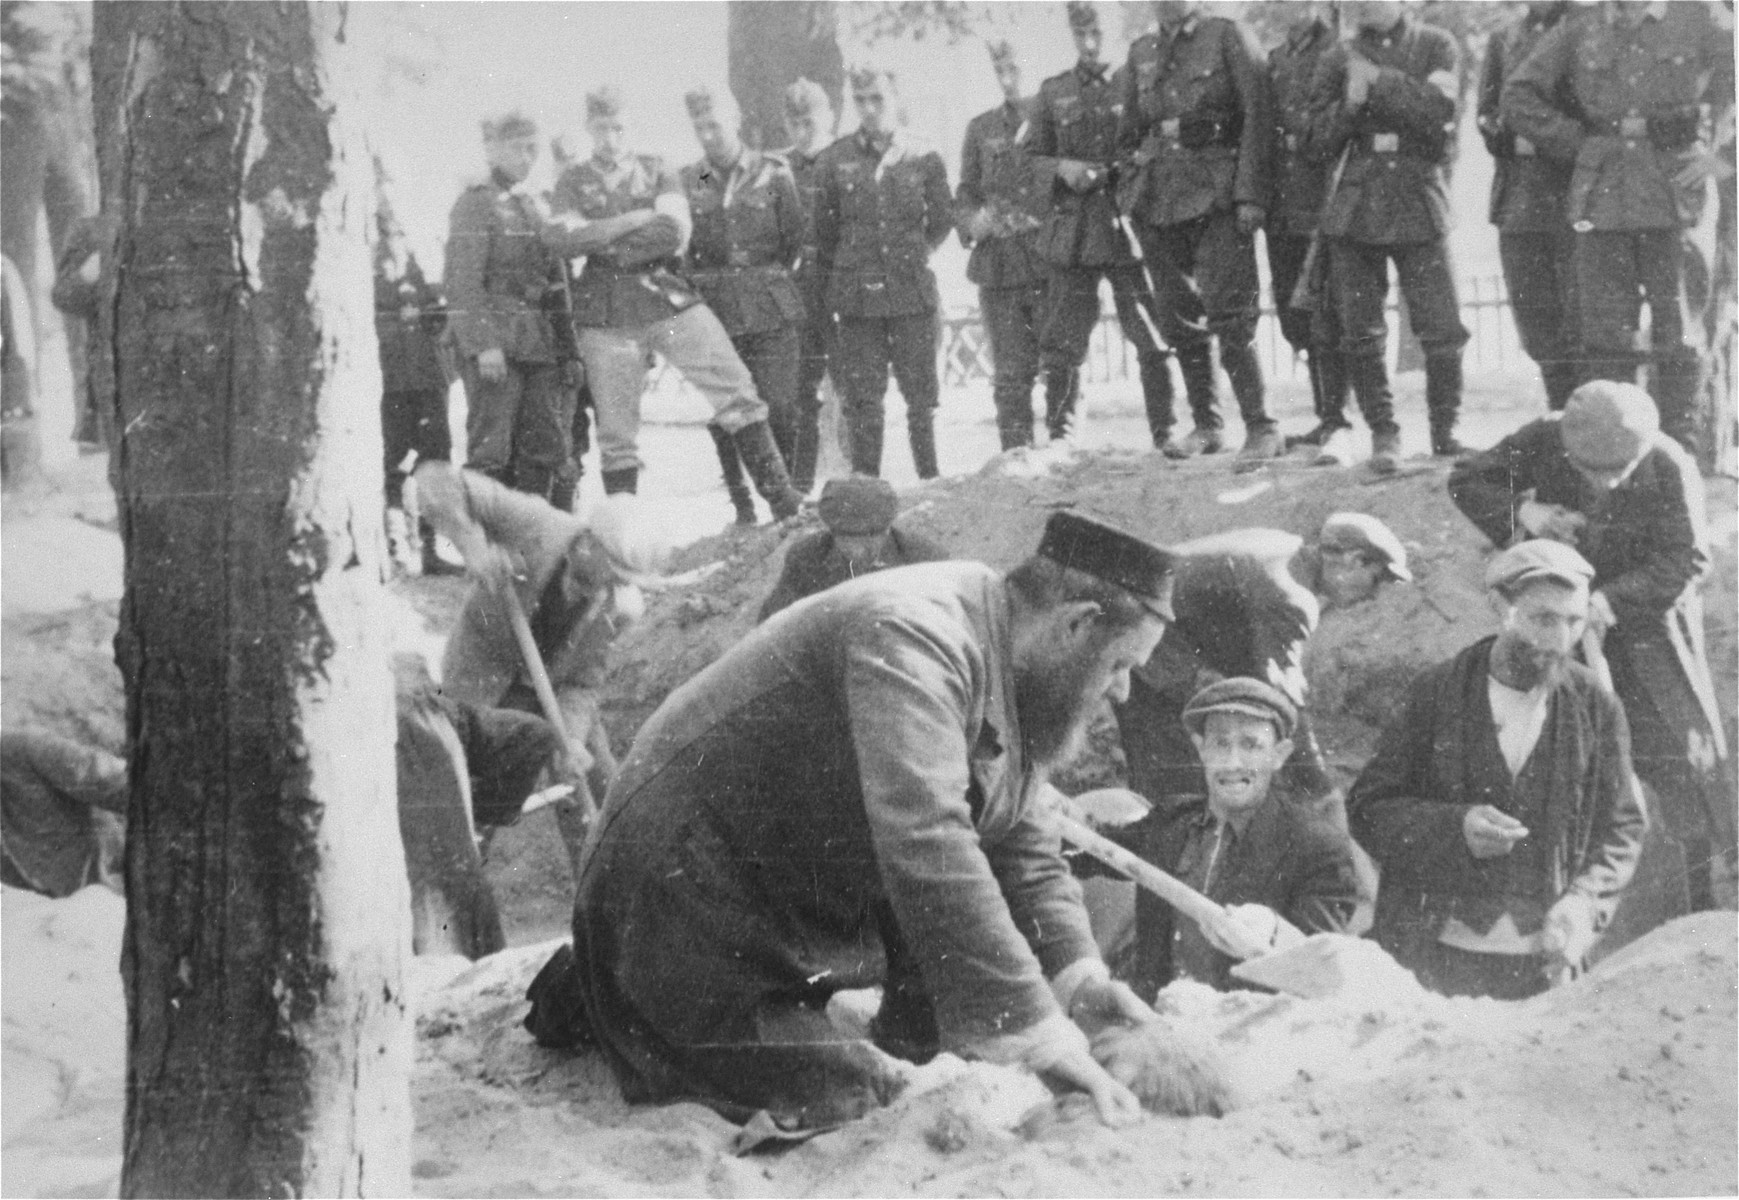 German troops look on as Jews dig a grave for the bodies of four German soldiers that were found in Konskie.